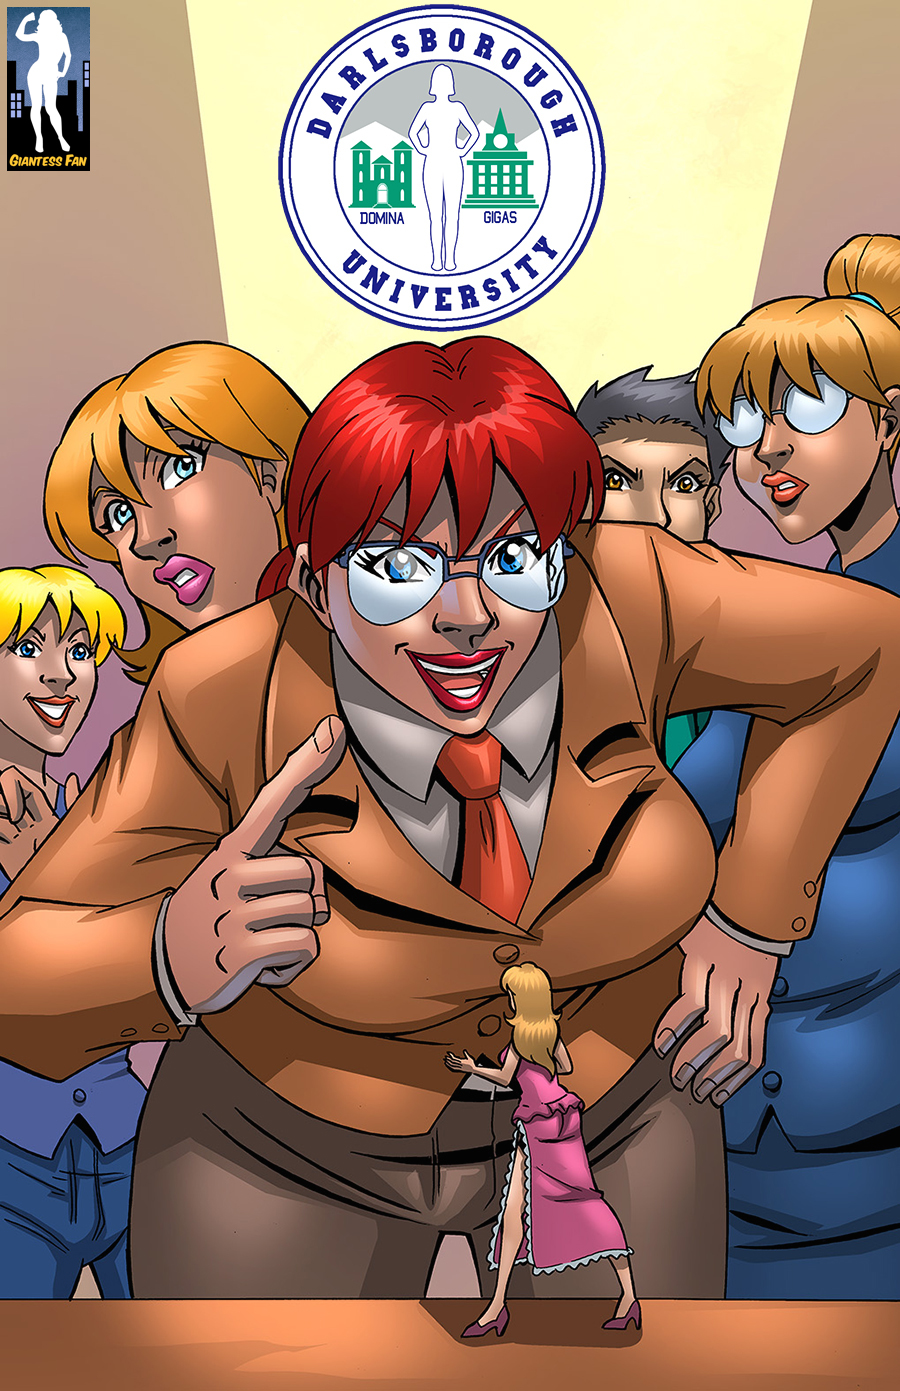 Darlsborough University 4 - The Ethics Committee by giantess-fan-comics